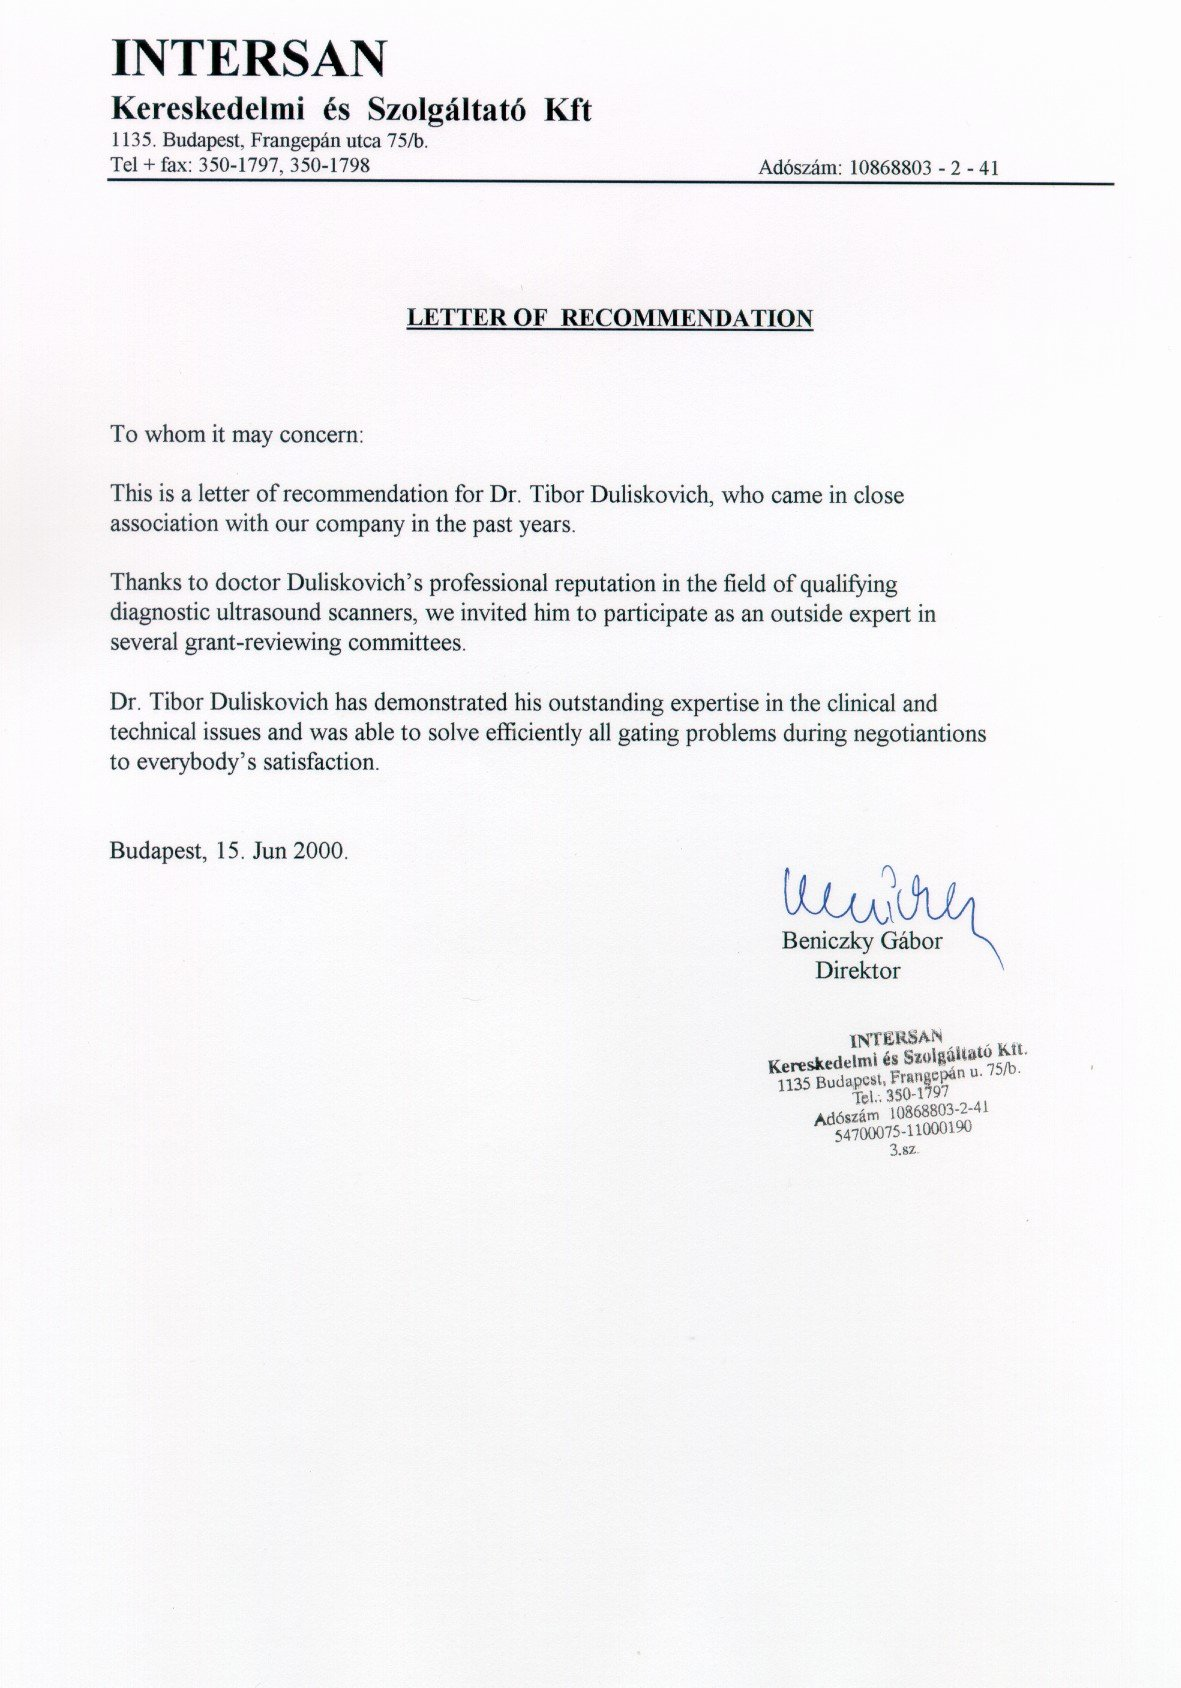 Physician Letter Of Recommendation Inspirational Physician assistant Letter Of Re Mendation